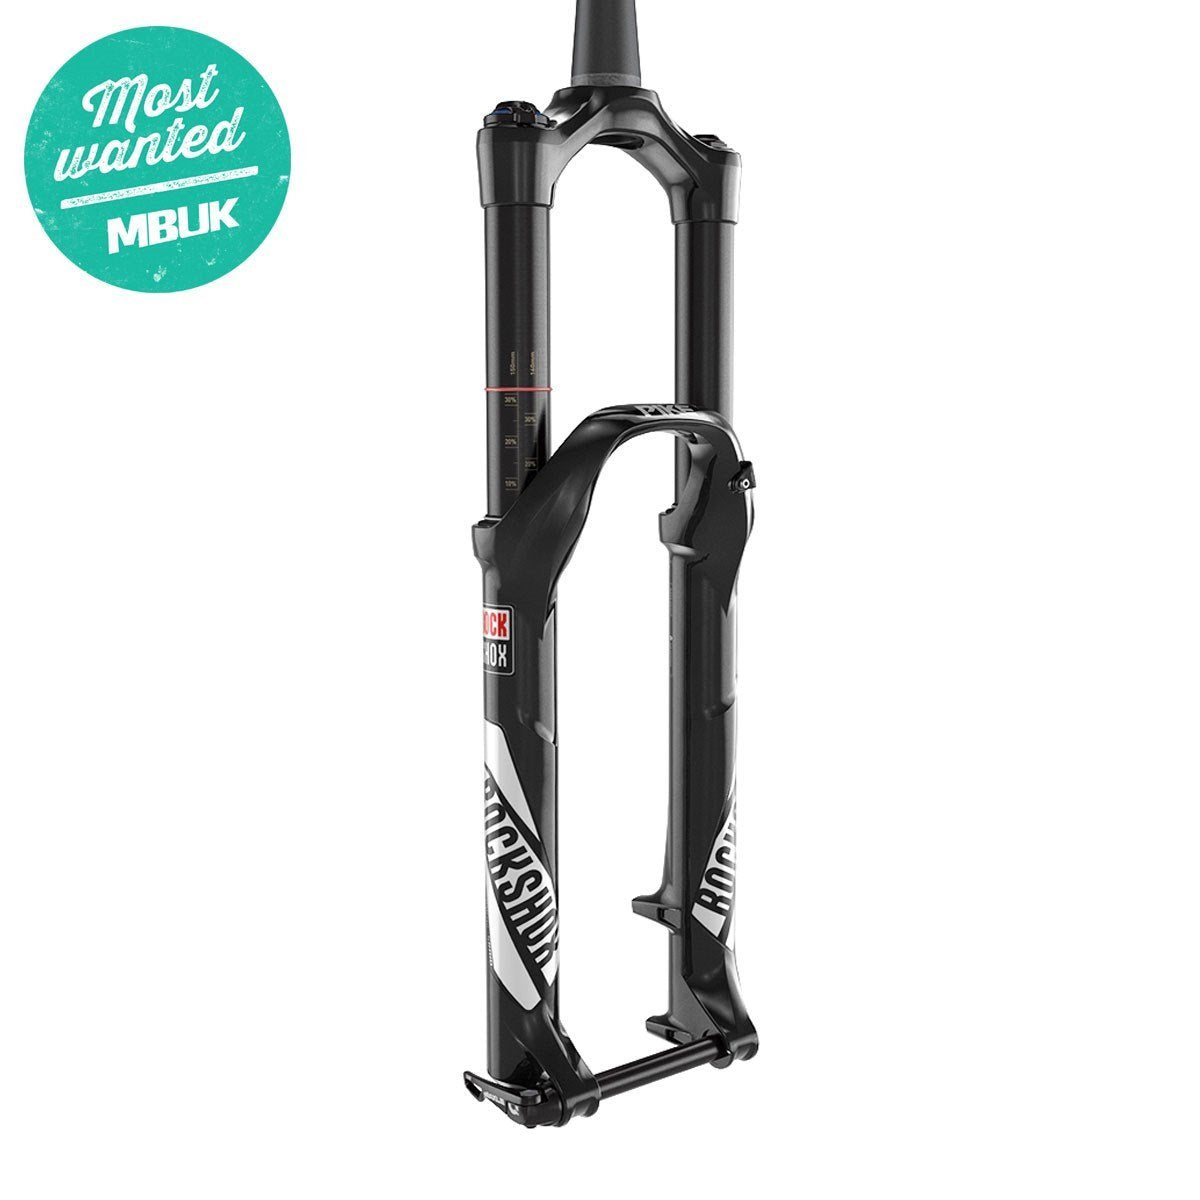 "Rockshox Components > Suspension 130 Rockshox PIKE RCT3 - 27.5"" MAXLELITE15 SOLO AIR 150 DIFFUSION BLACK CROWN ADJ ALUM STR TPR DISC"